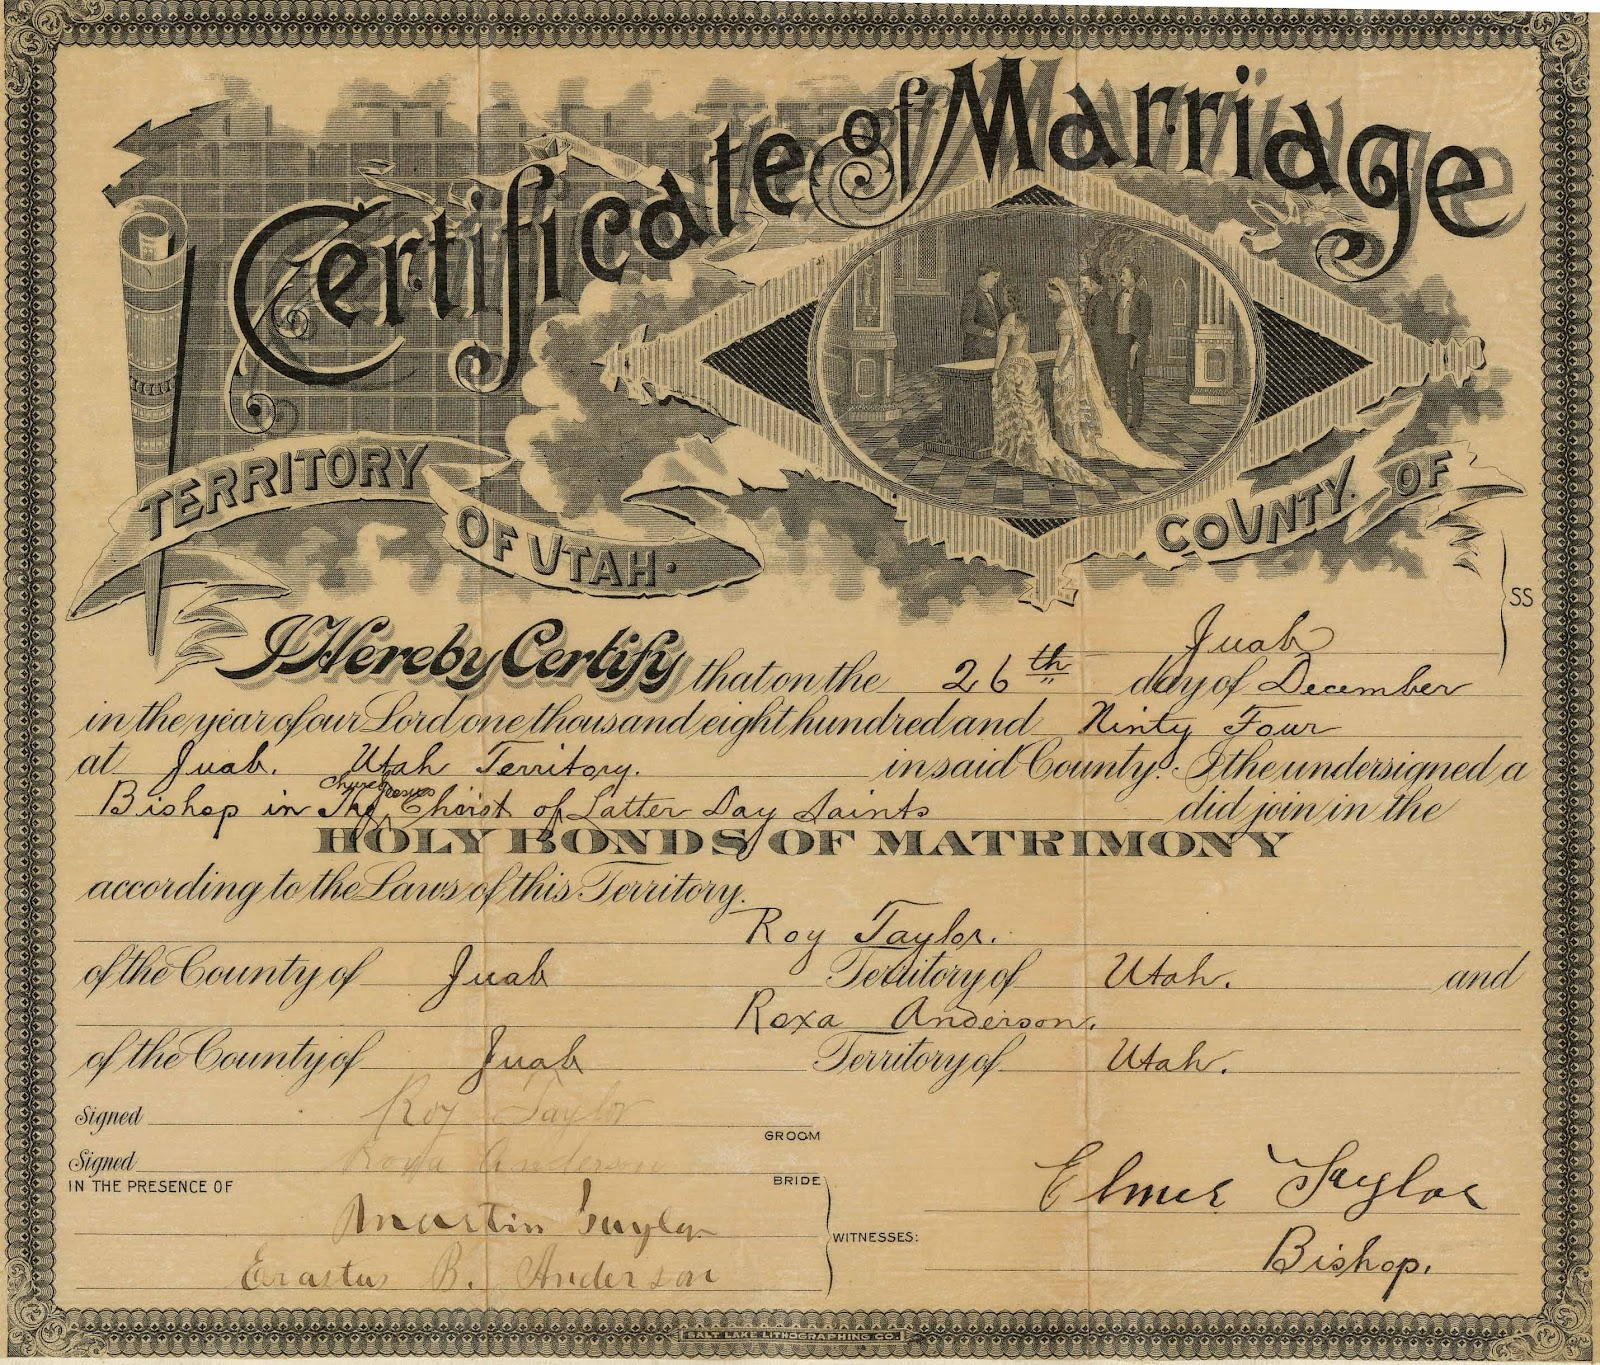 Marriage Records: LeRoy And Vera Huber: Roy Taylor & Roxa Anderson